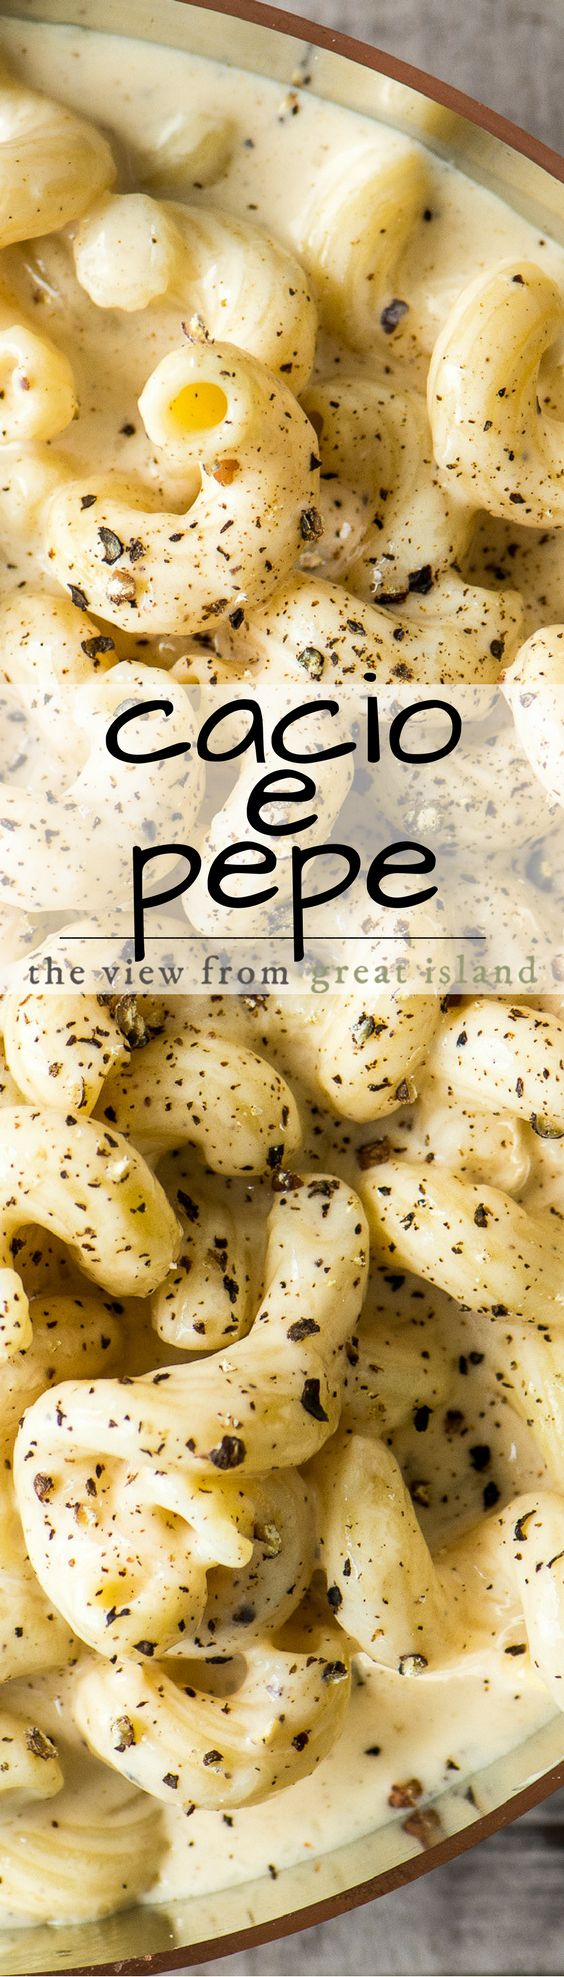 Cacio e Pepe Macaroni and Cheese marries the uber simple but powerfully flavored classic Italian cheese and pepper pasta with everybody's favorite comfort food ~ delish!